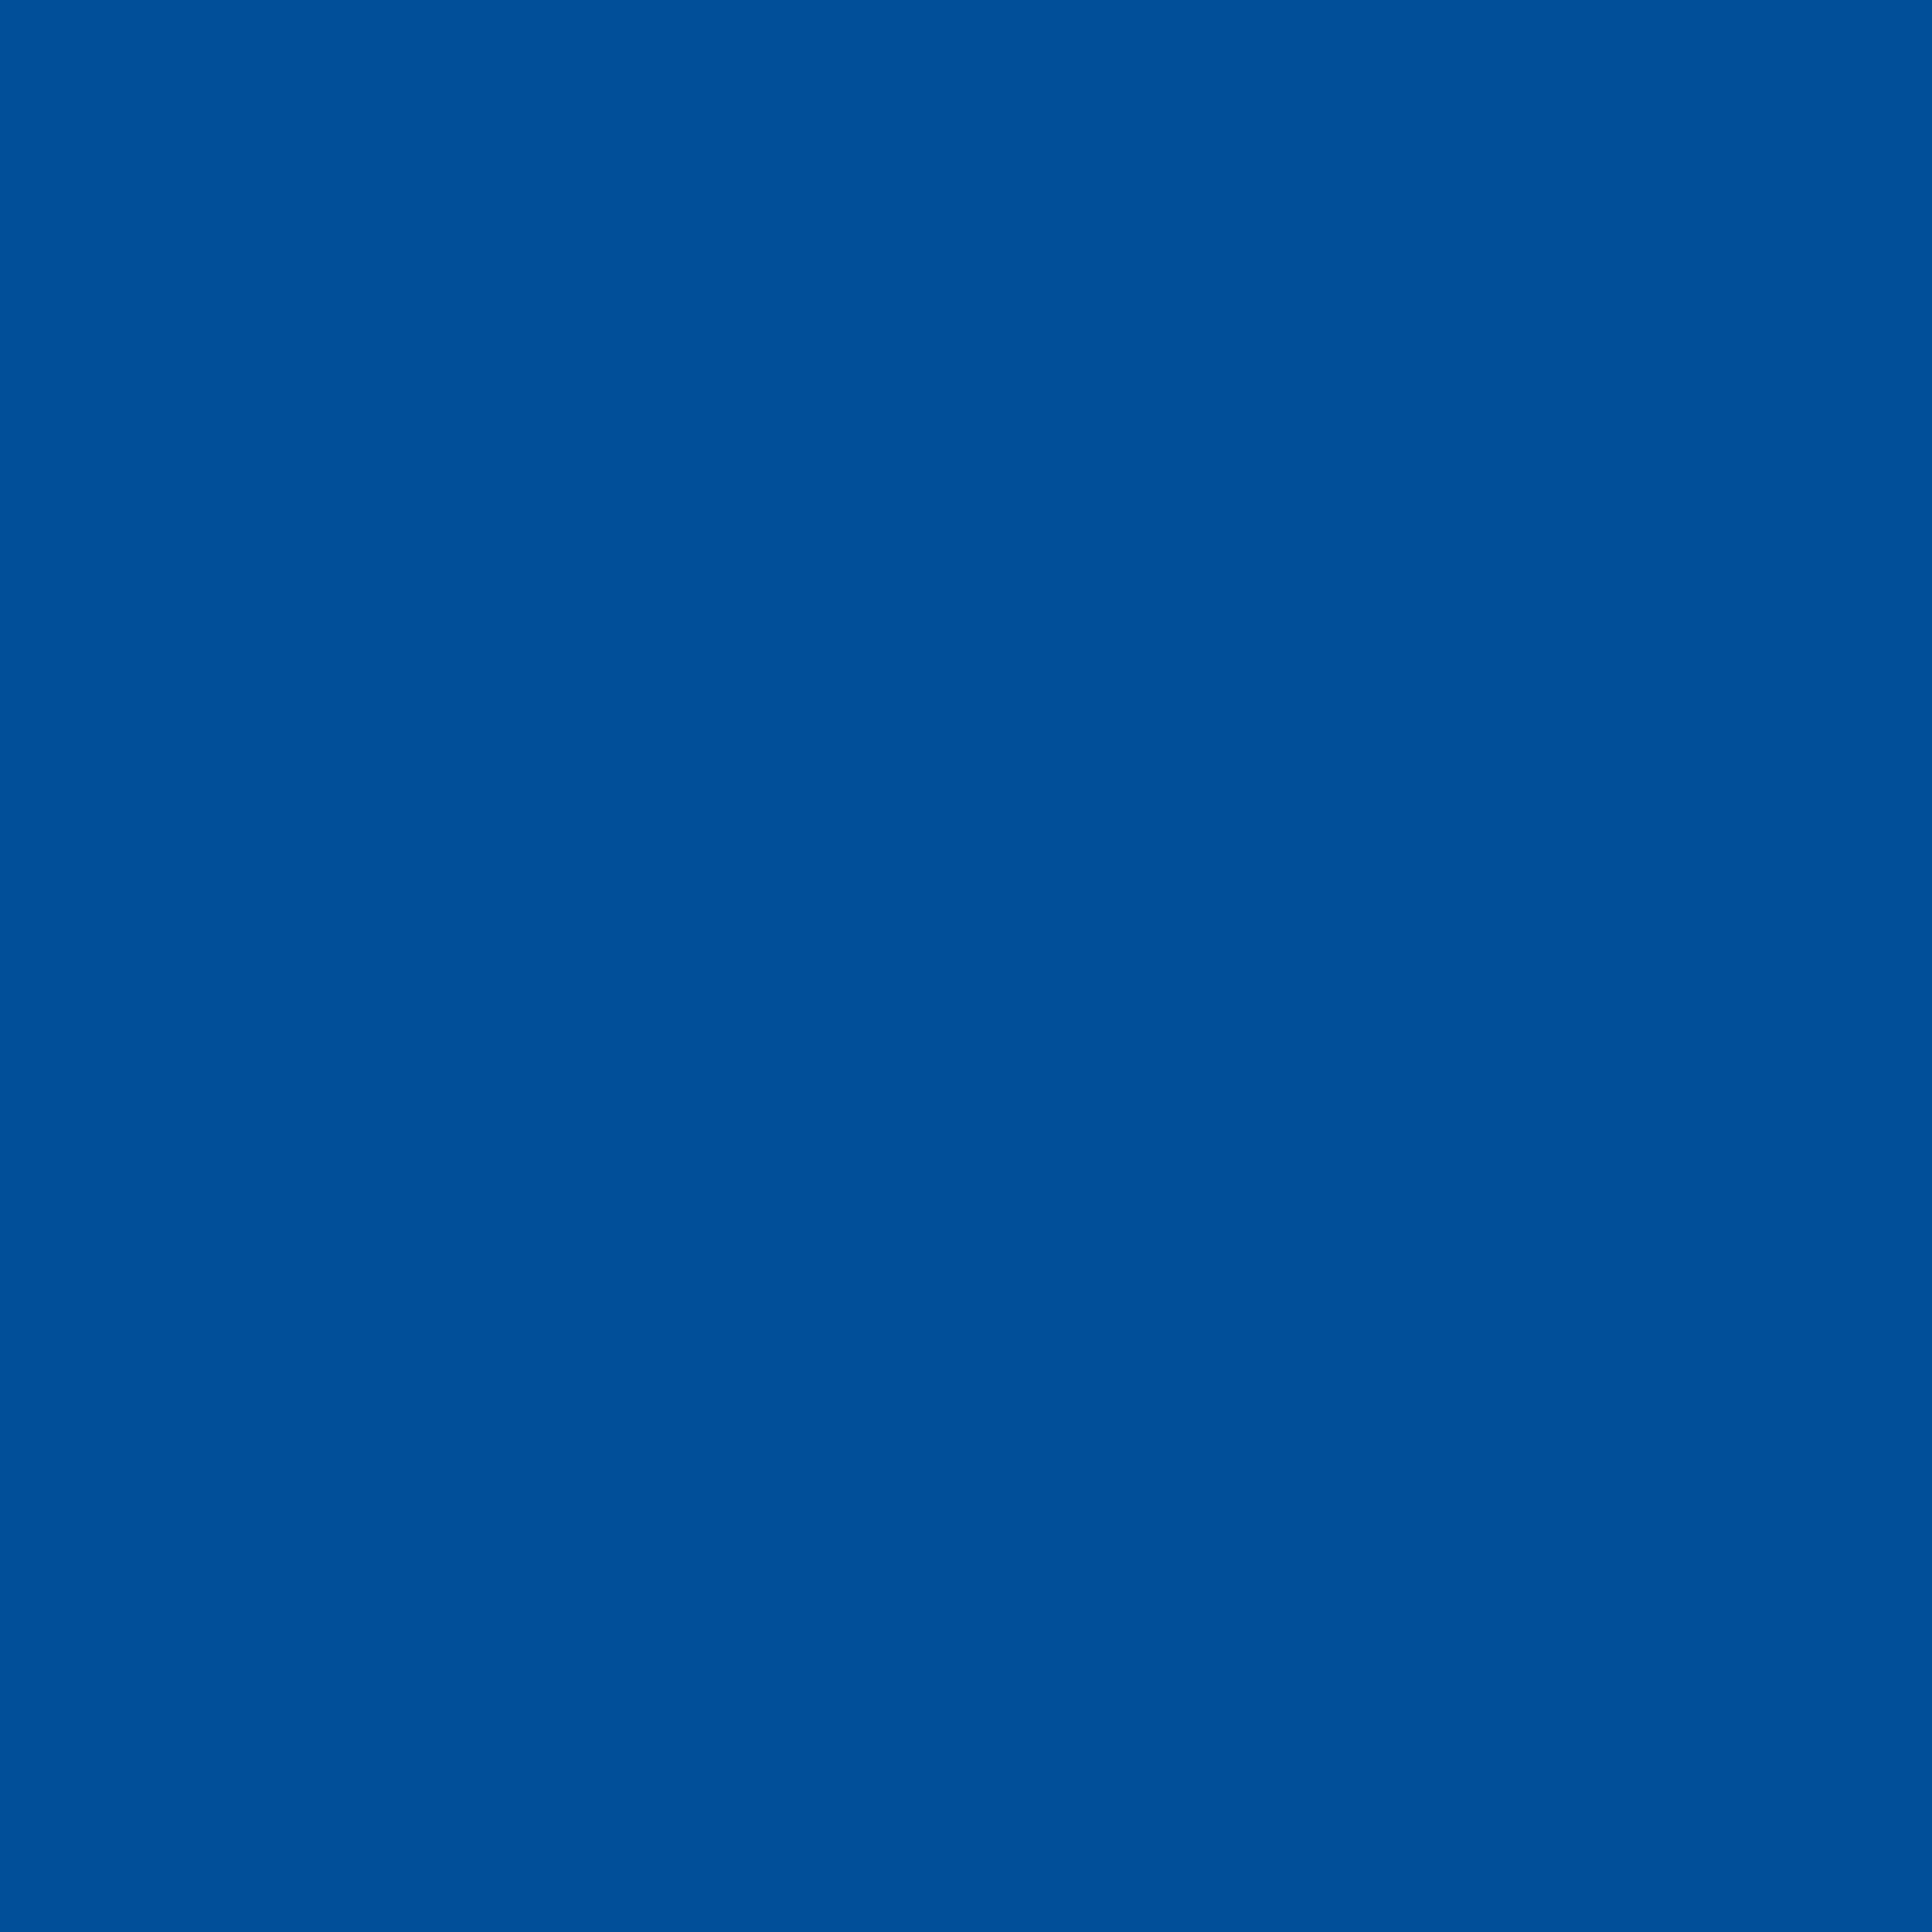 3600x3600 USAFA Blue Solid Color Background